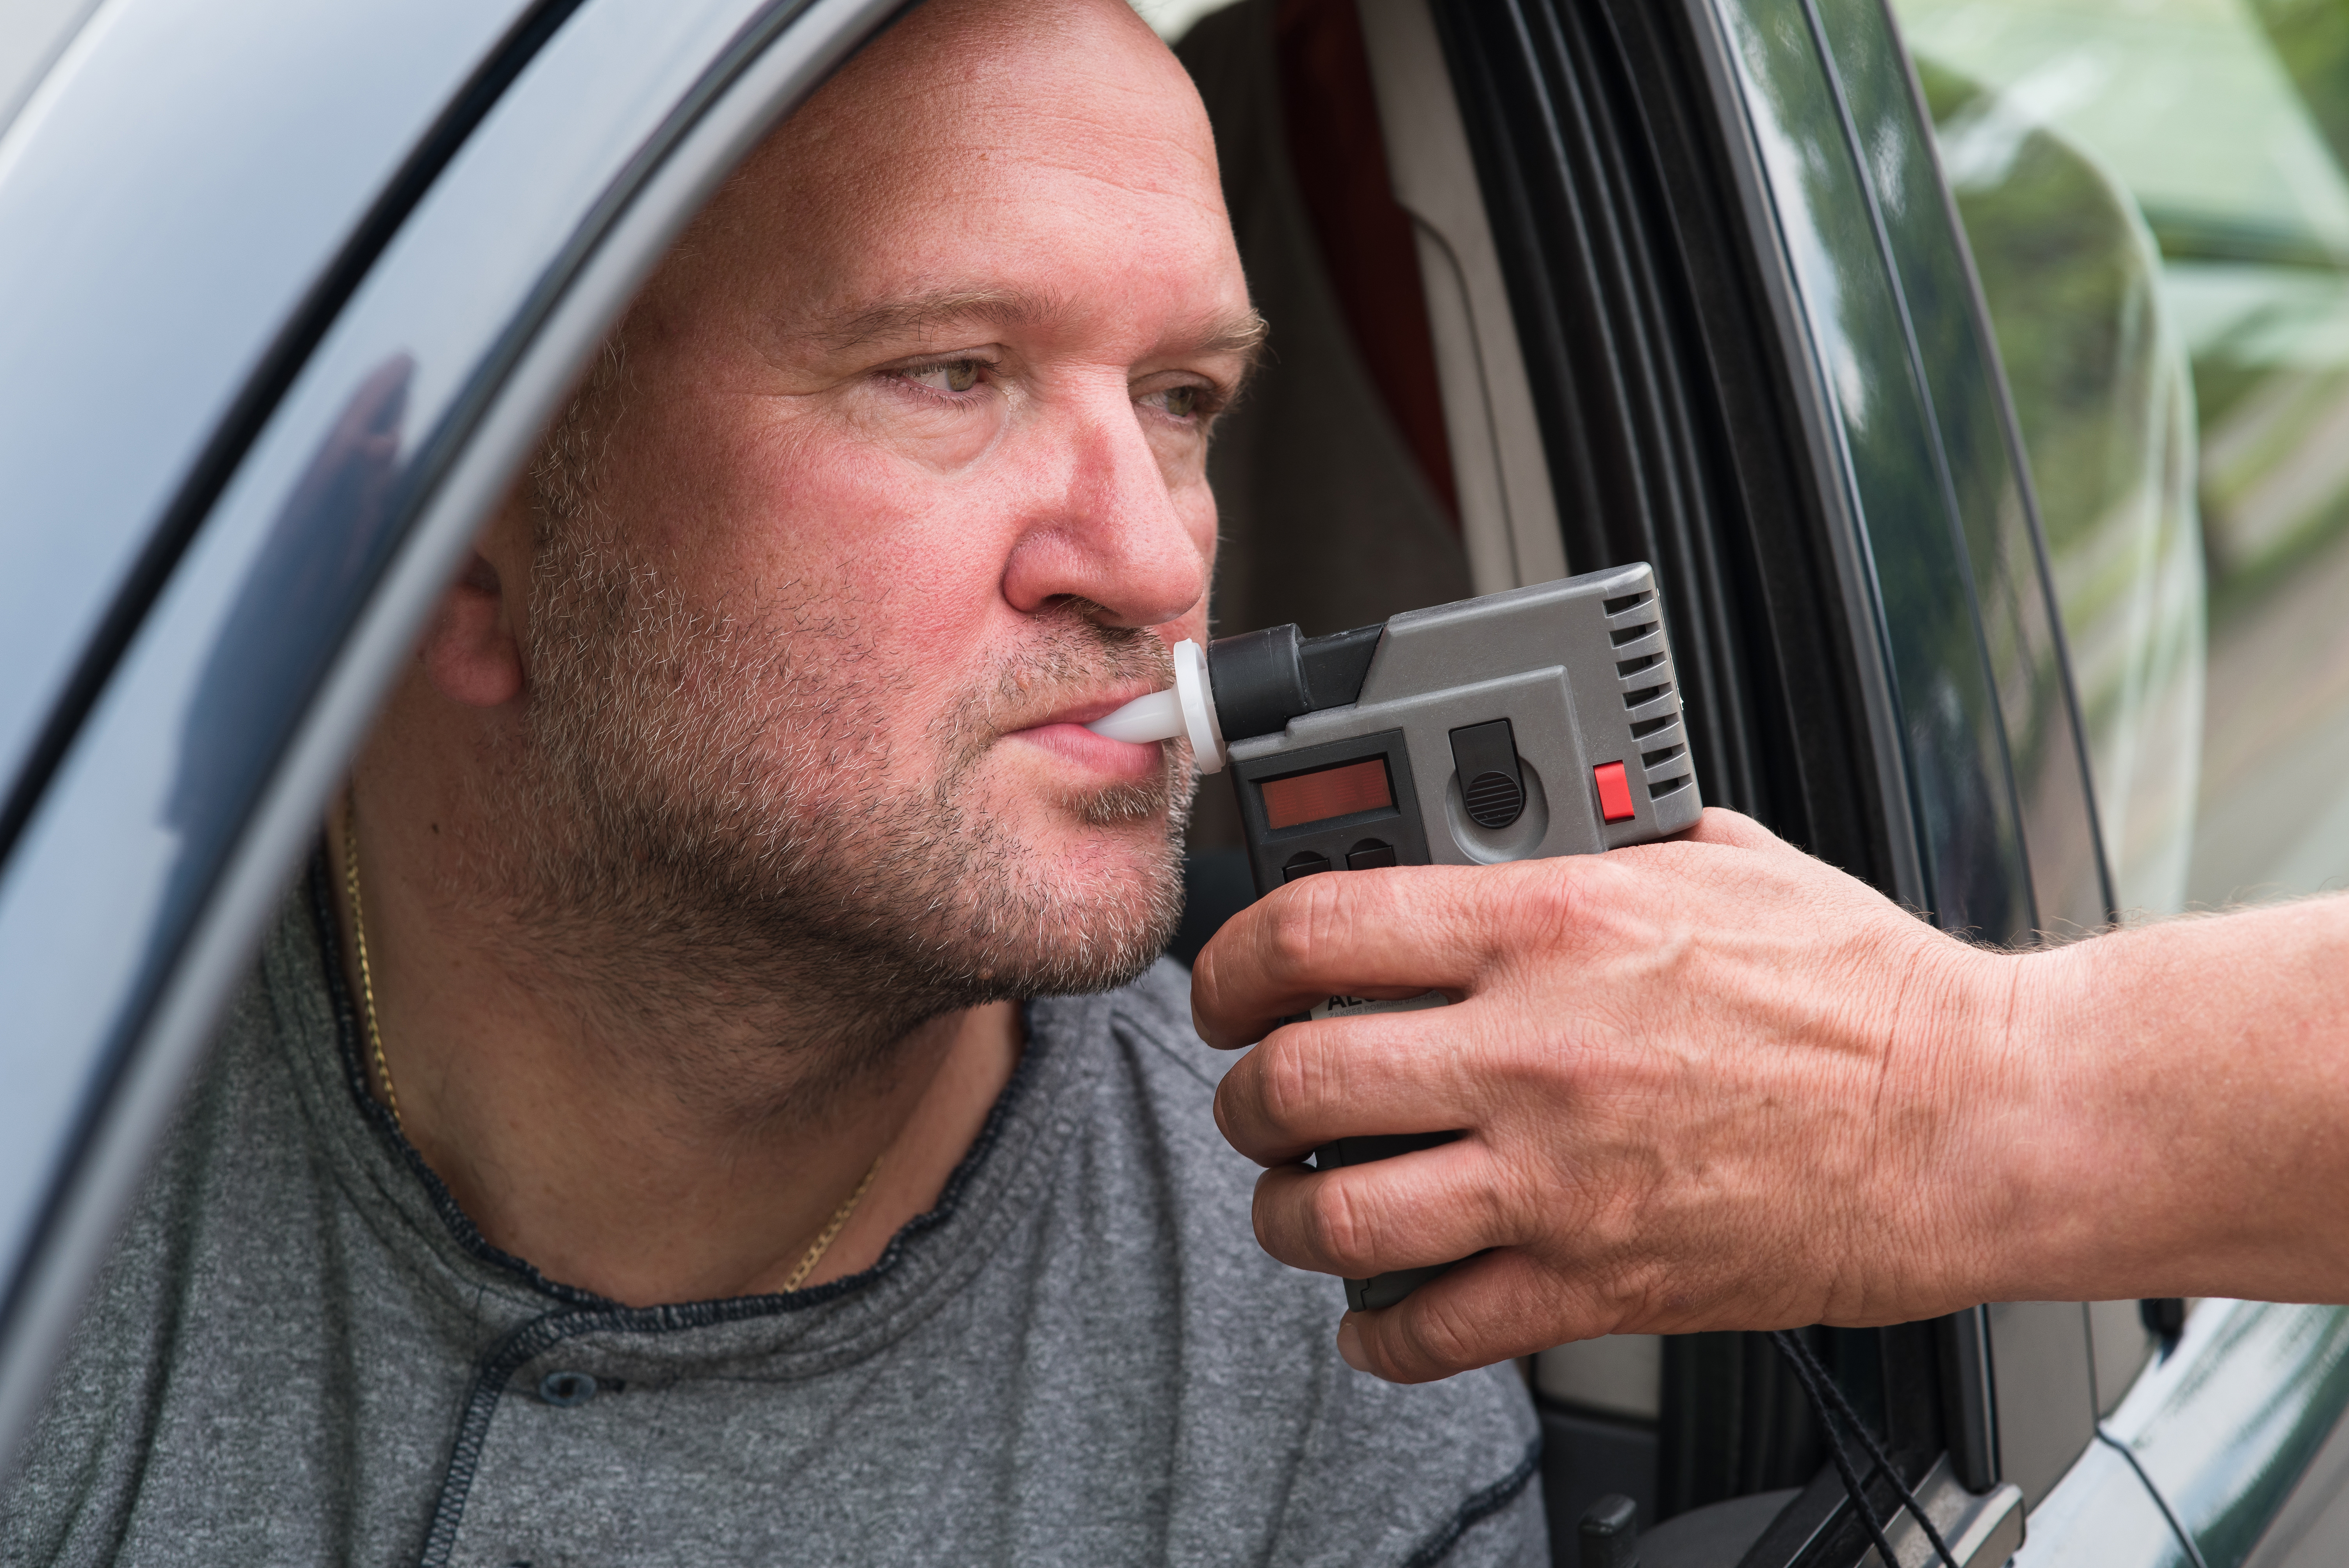 Blood alcohol level estimates are very general because a variety of factors determine the number.